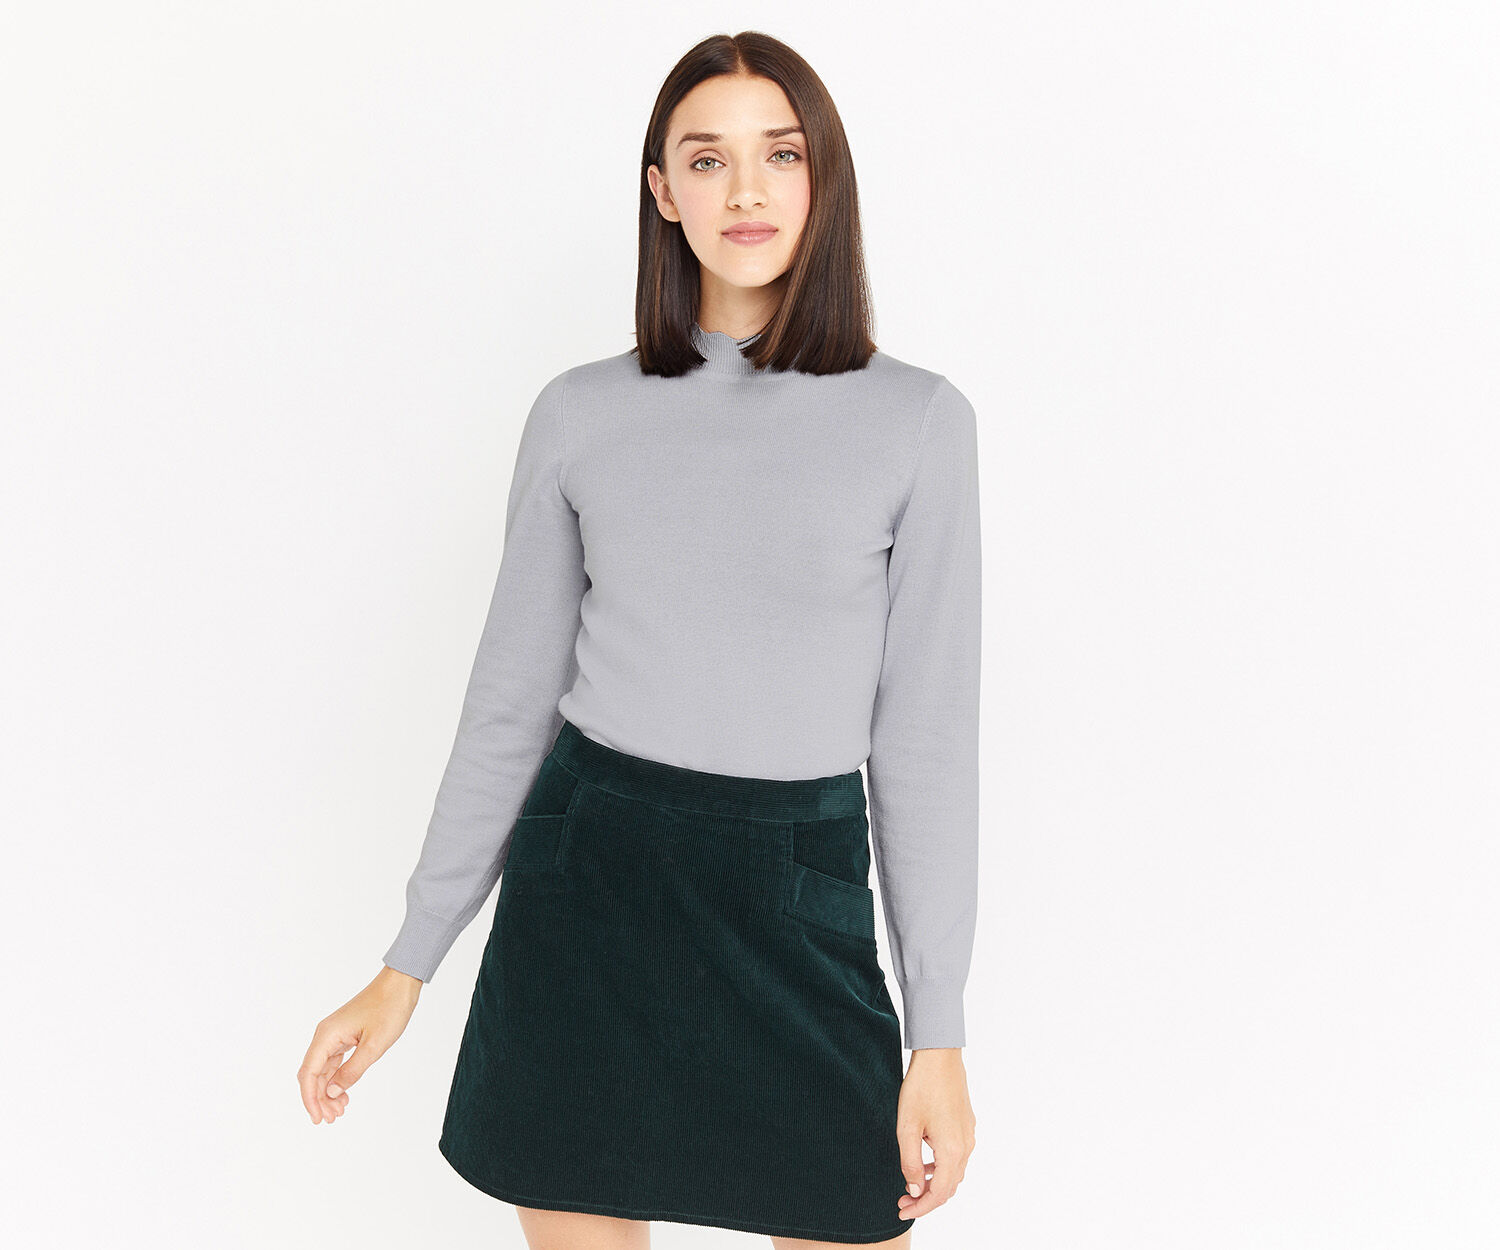 Oasis, MINI SCALLOP TURTLE NECK KNIT Pale Grey 1